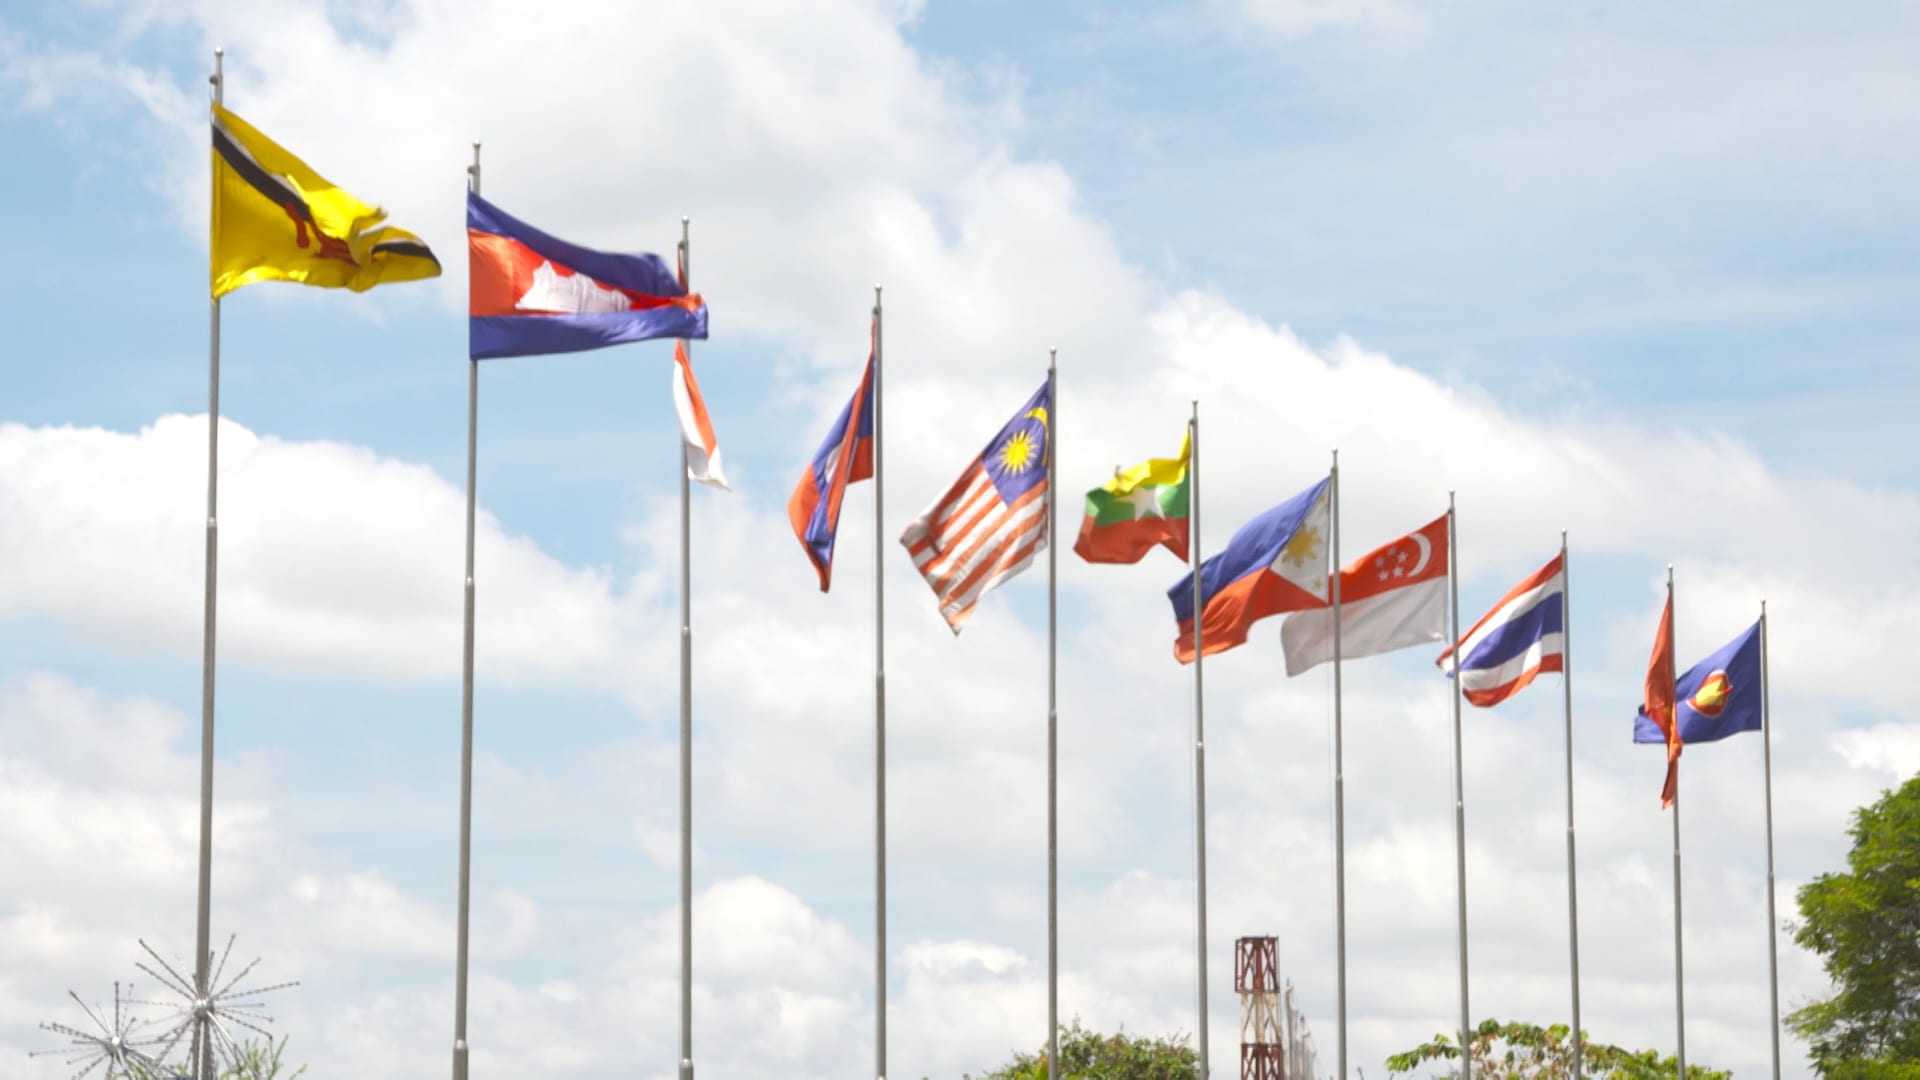 Ep 3: Building The ASEAN Community (The Second Major Milestone)